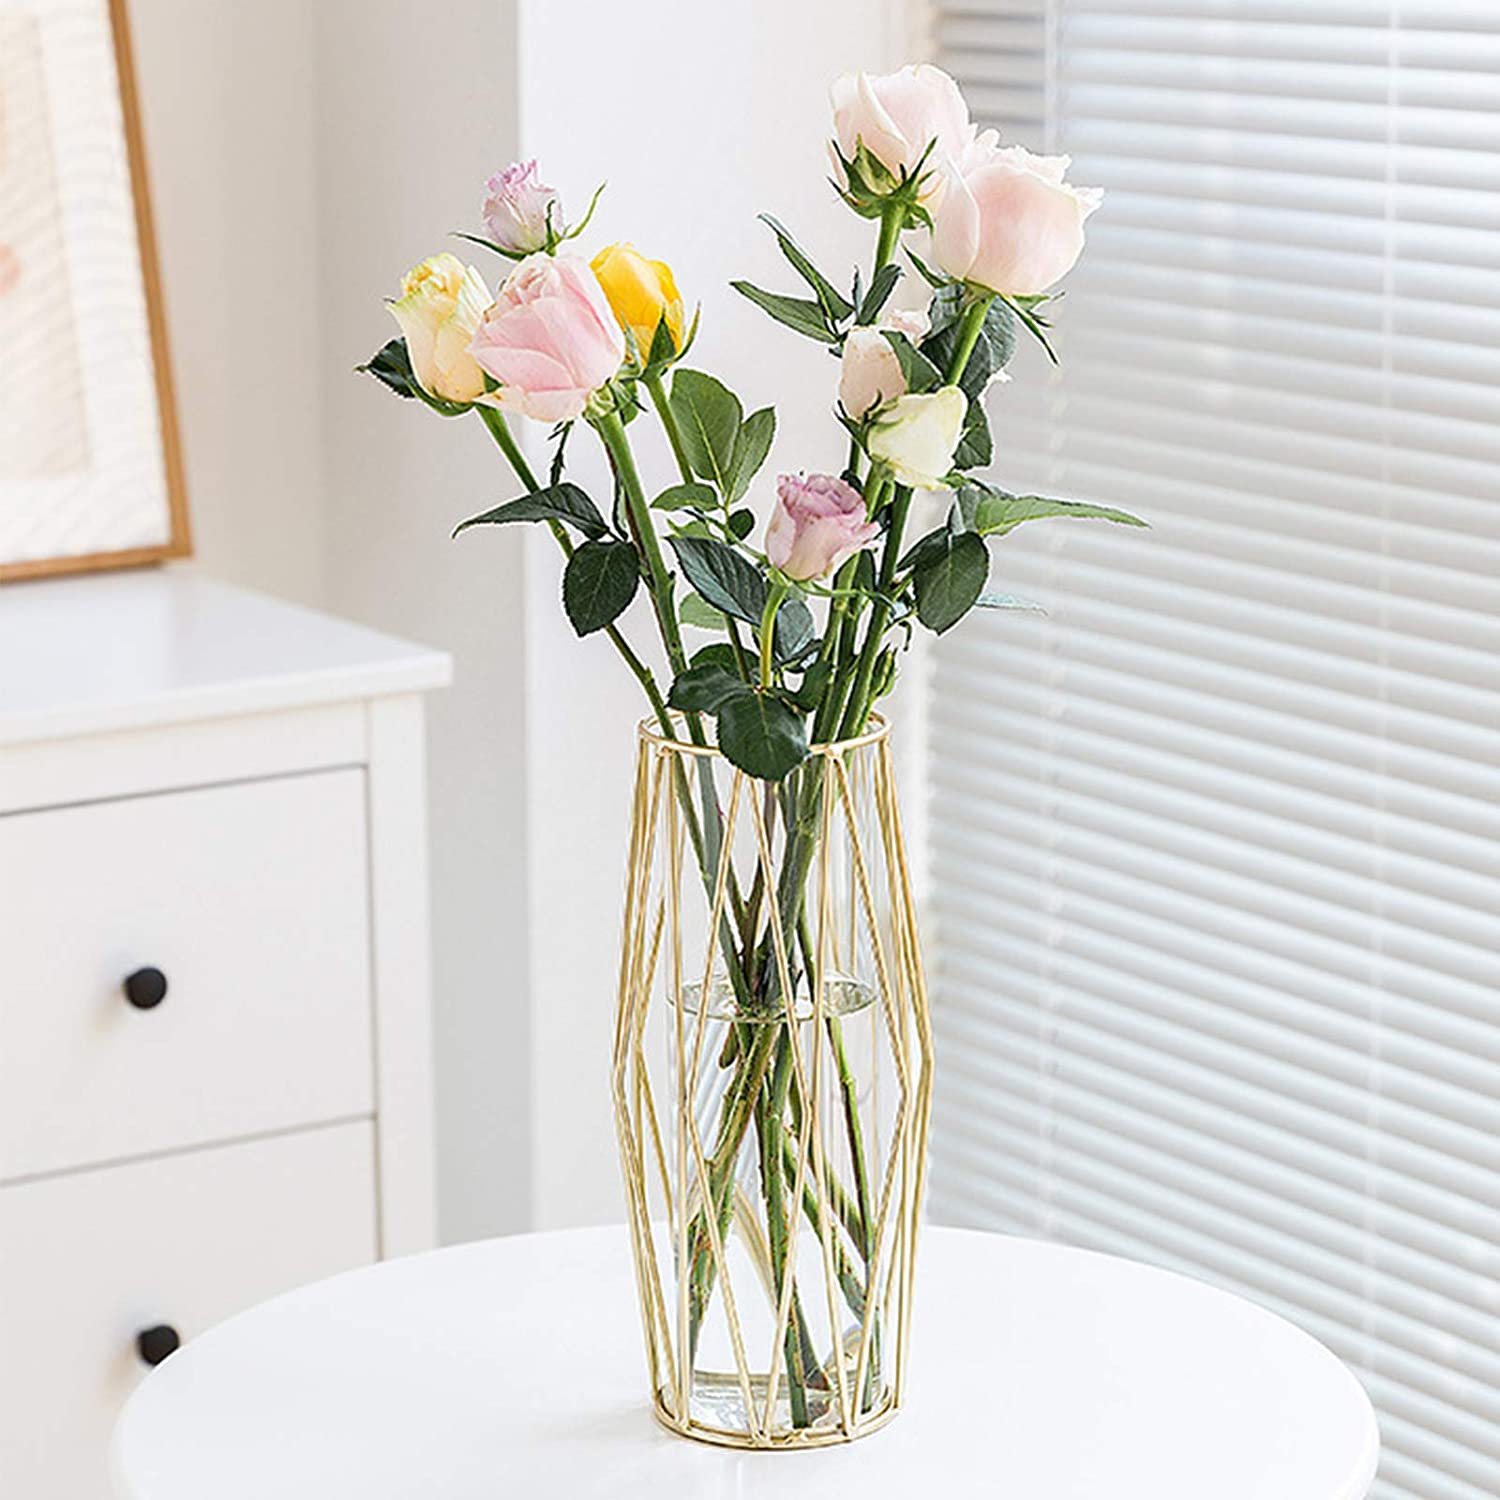 Gelible Geometric Glass Vase with Metal Bracket, Crystal Transparent Inner Vase, Hand-Plated Geometric Metal Vase, Light Gold Color Vase Decoration for Home Office Wedding Holiday Party Gifts